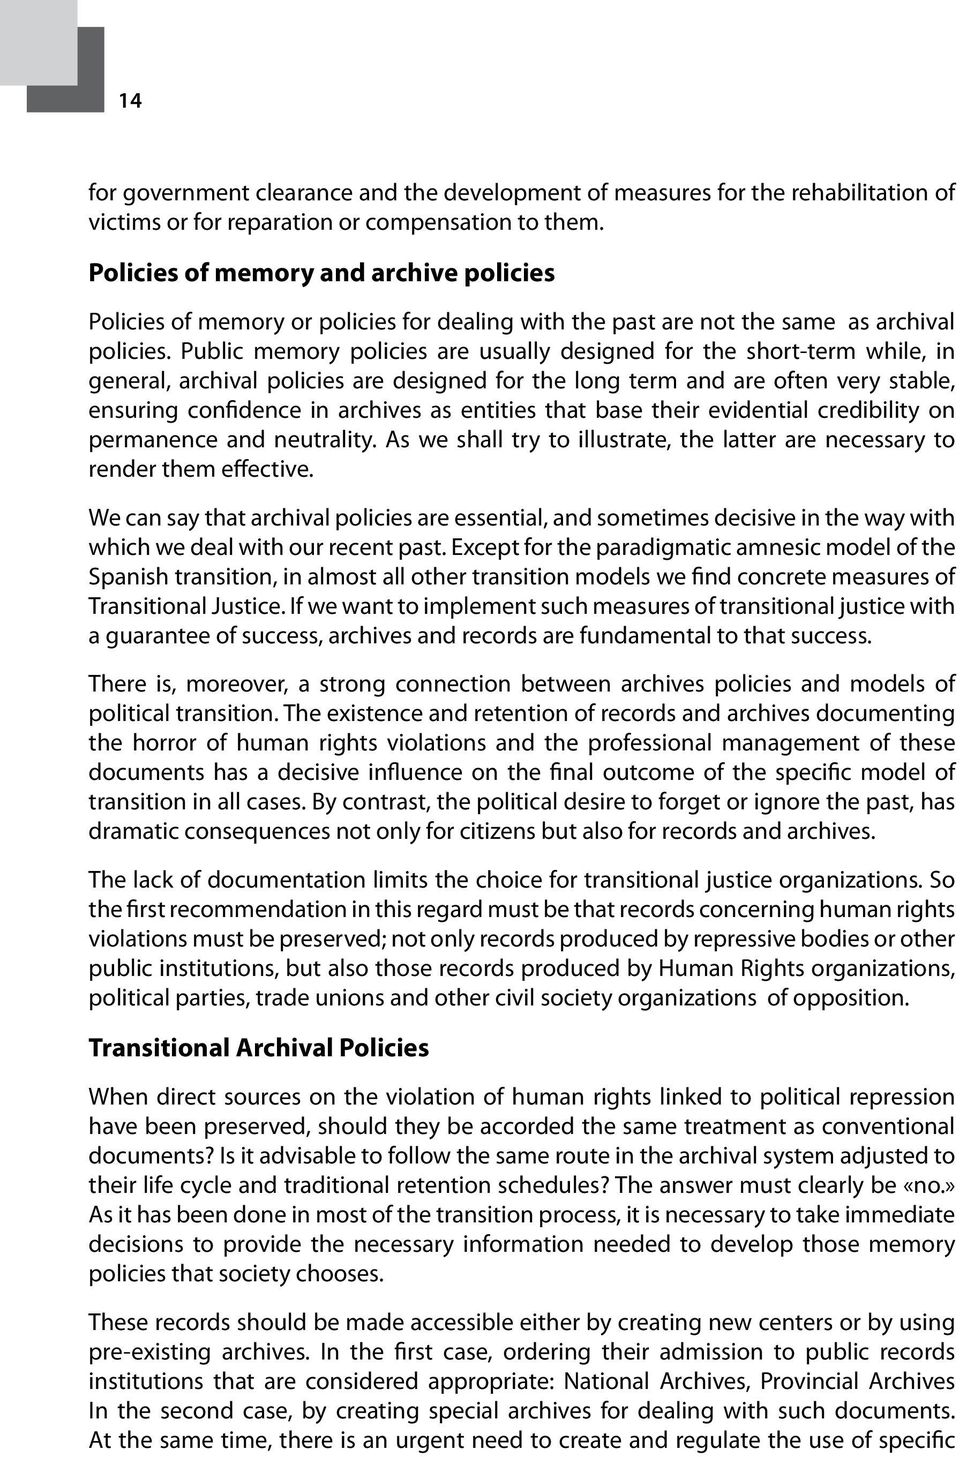 Public memory policies are usually designed for the short-term while, in general, archival policies are designed for the long term and are often very stable, ensuring confidence in archives as